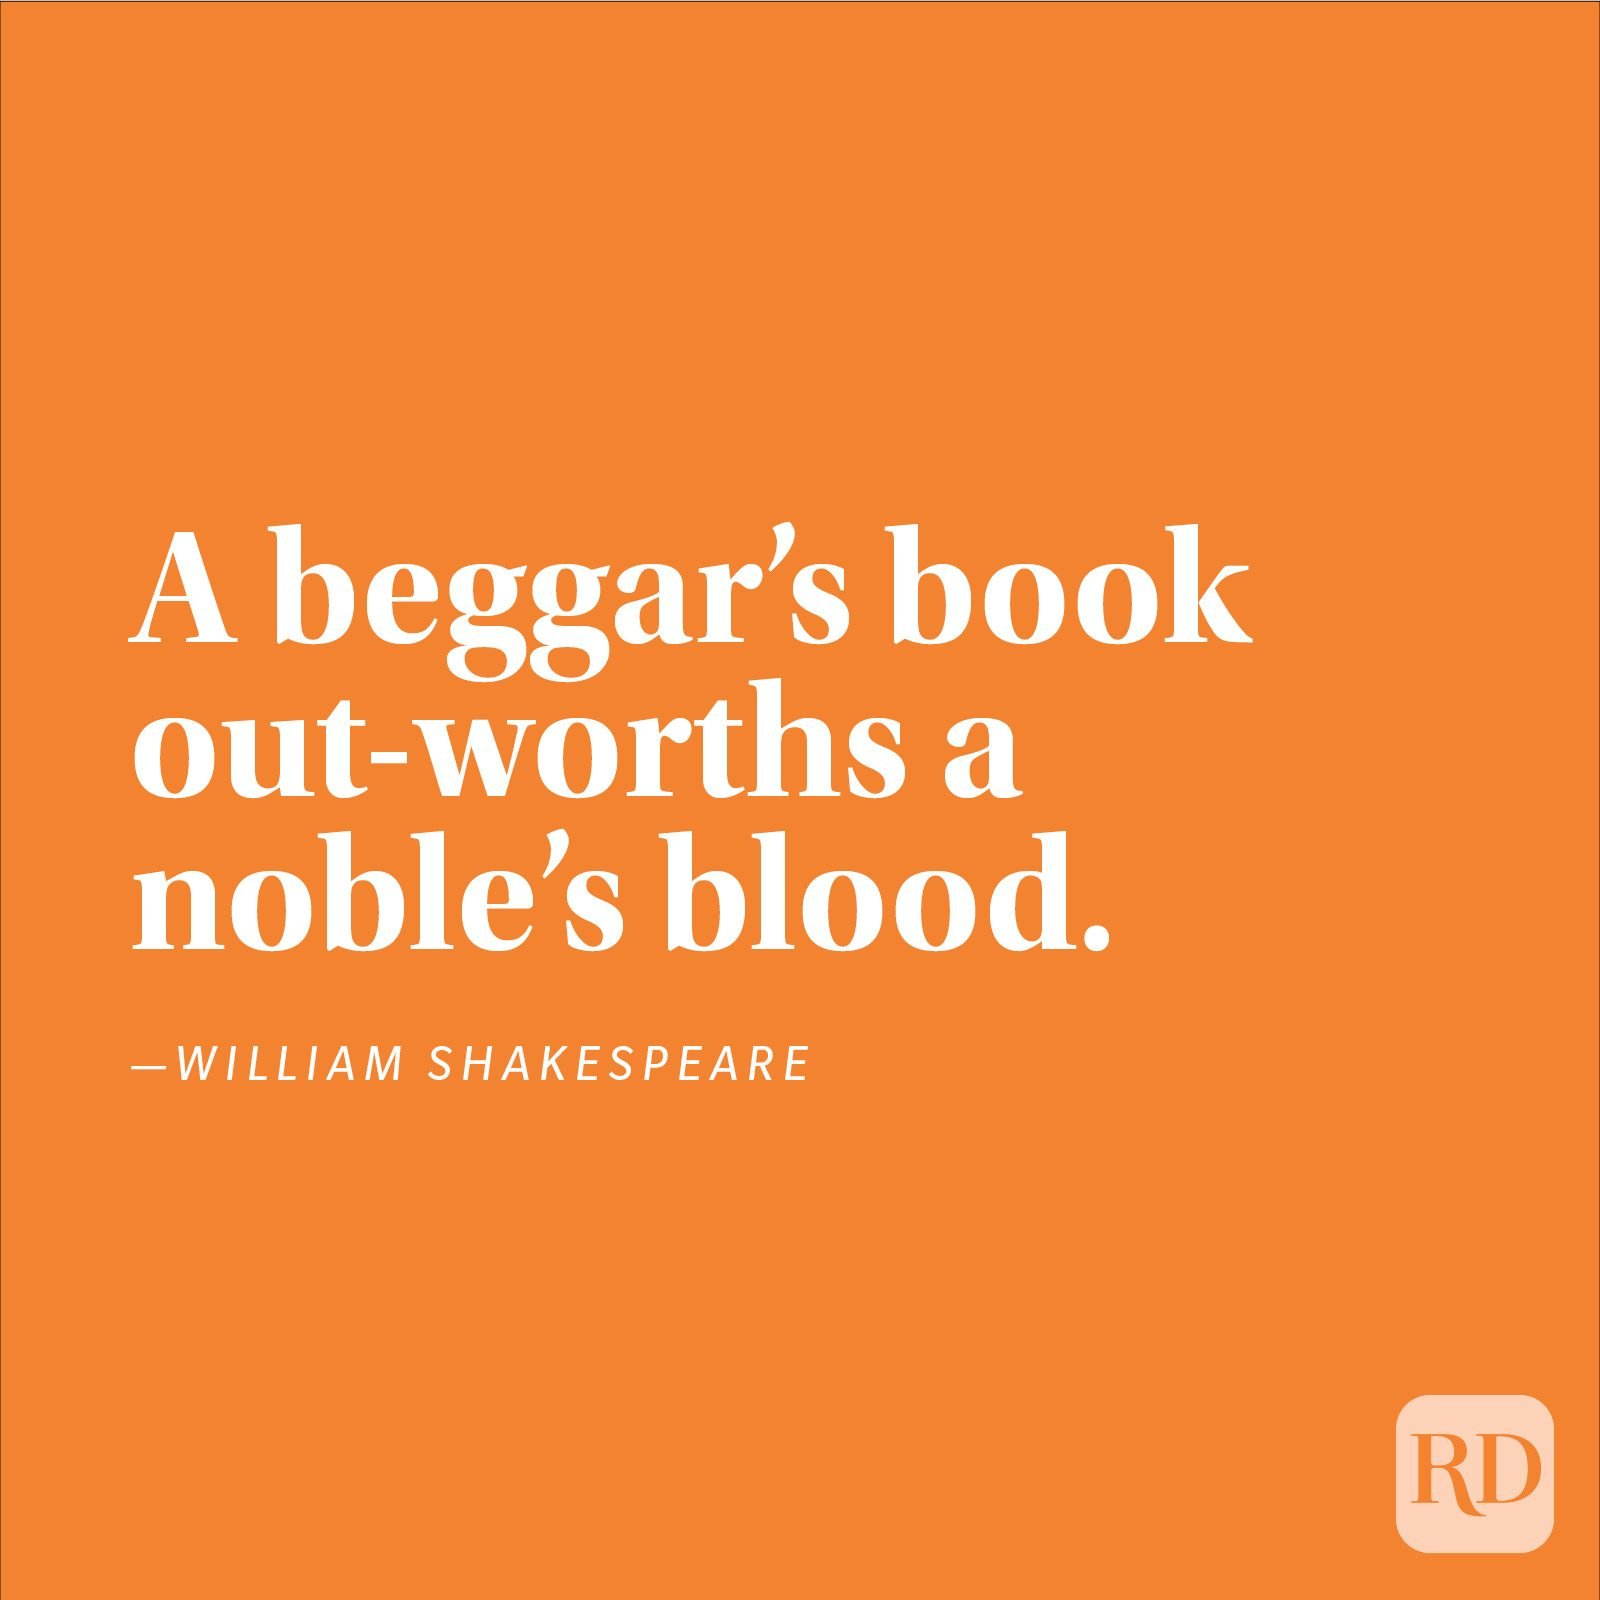 """A beggar's book out-worths a noble's blood."" —William Shakespeare"